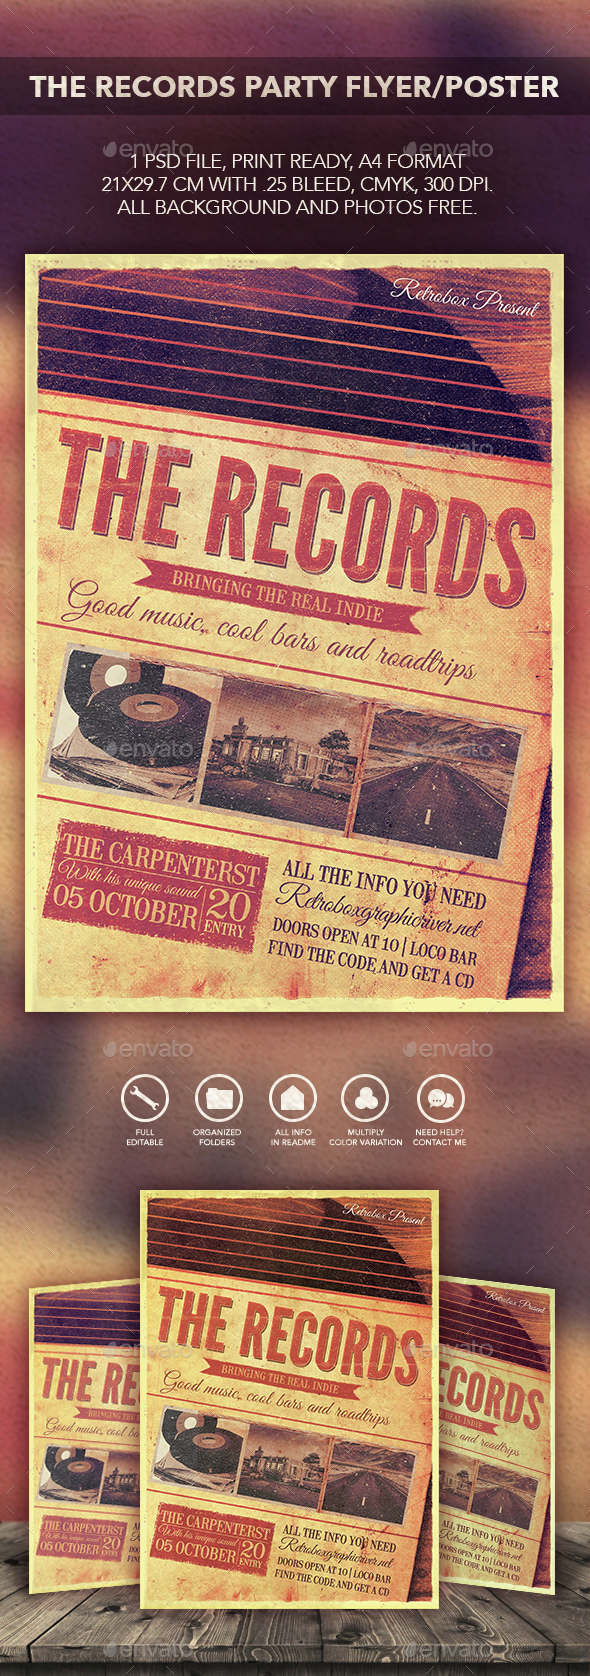 The Records Flyer Poster - Events Flyers